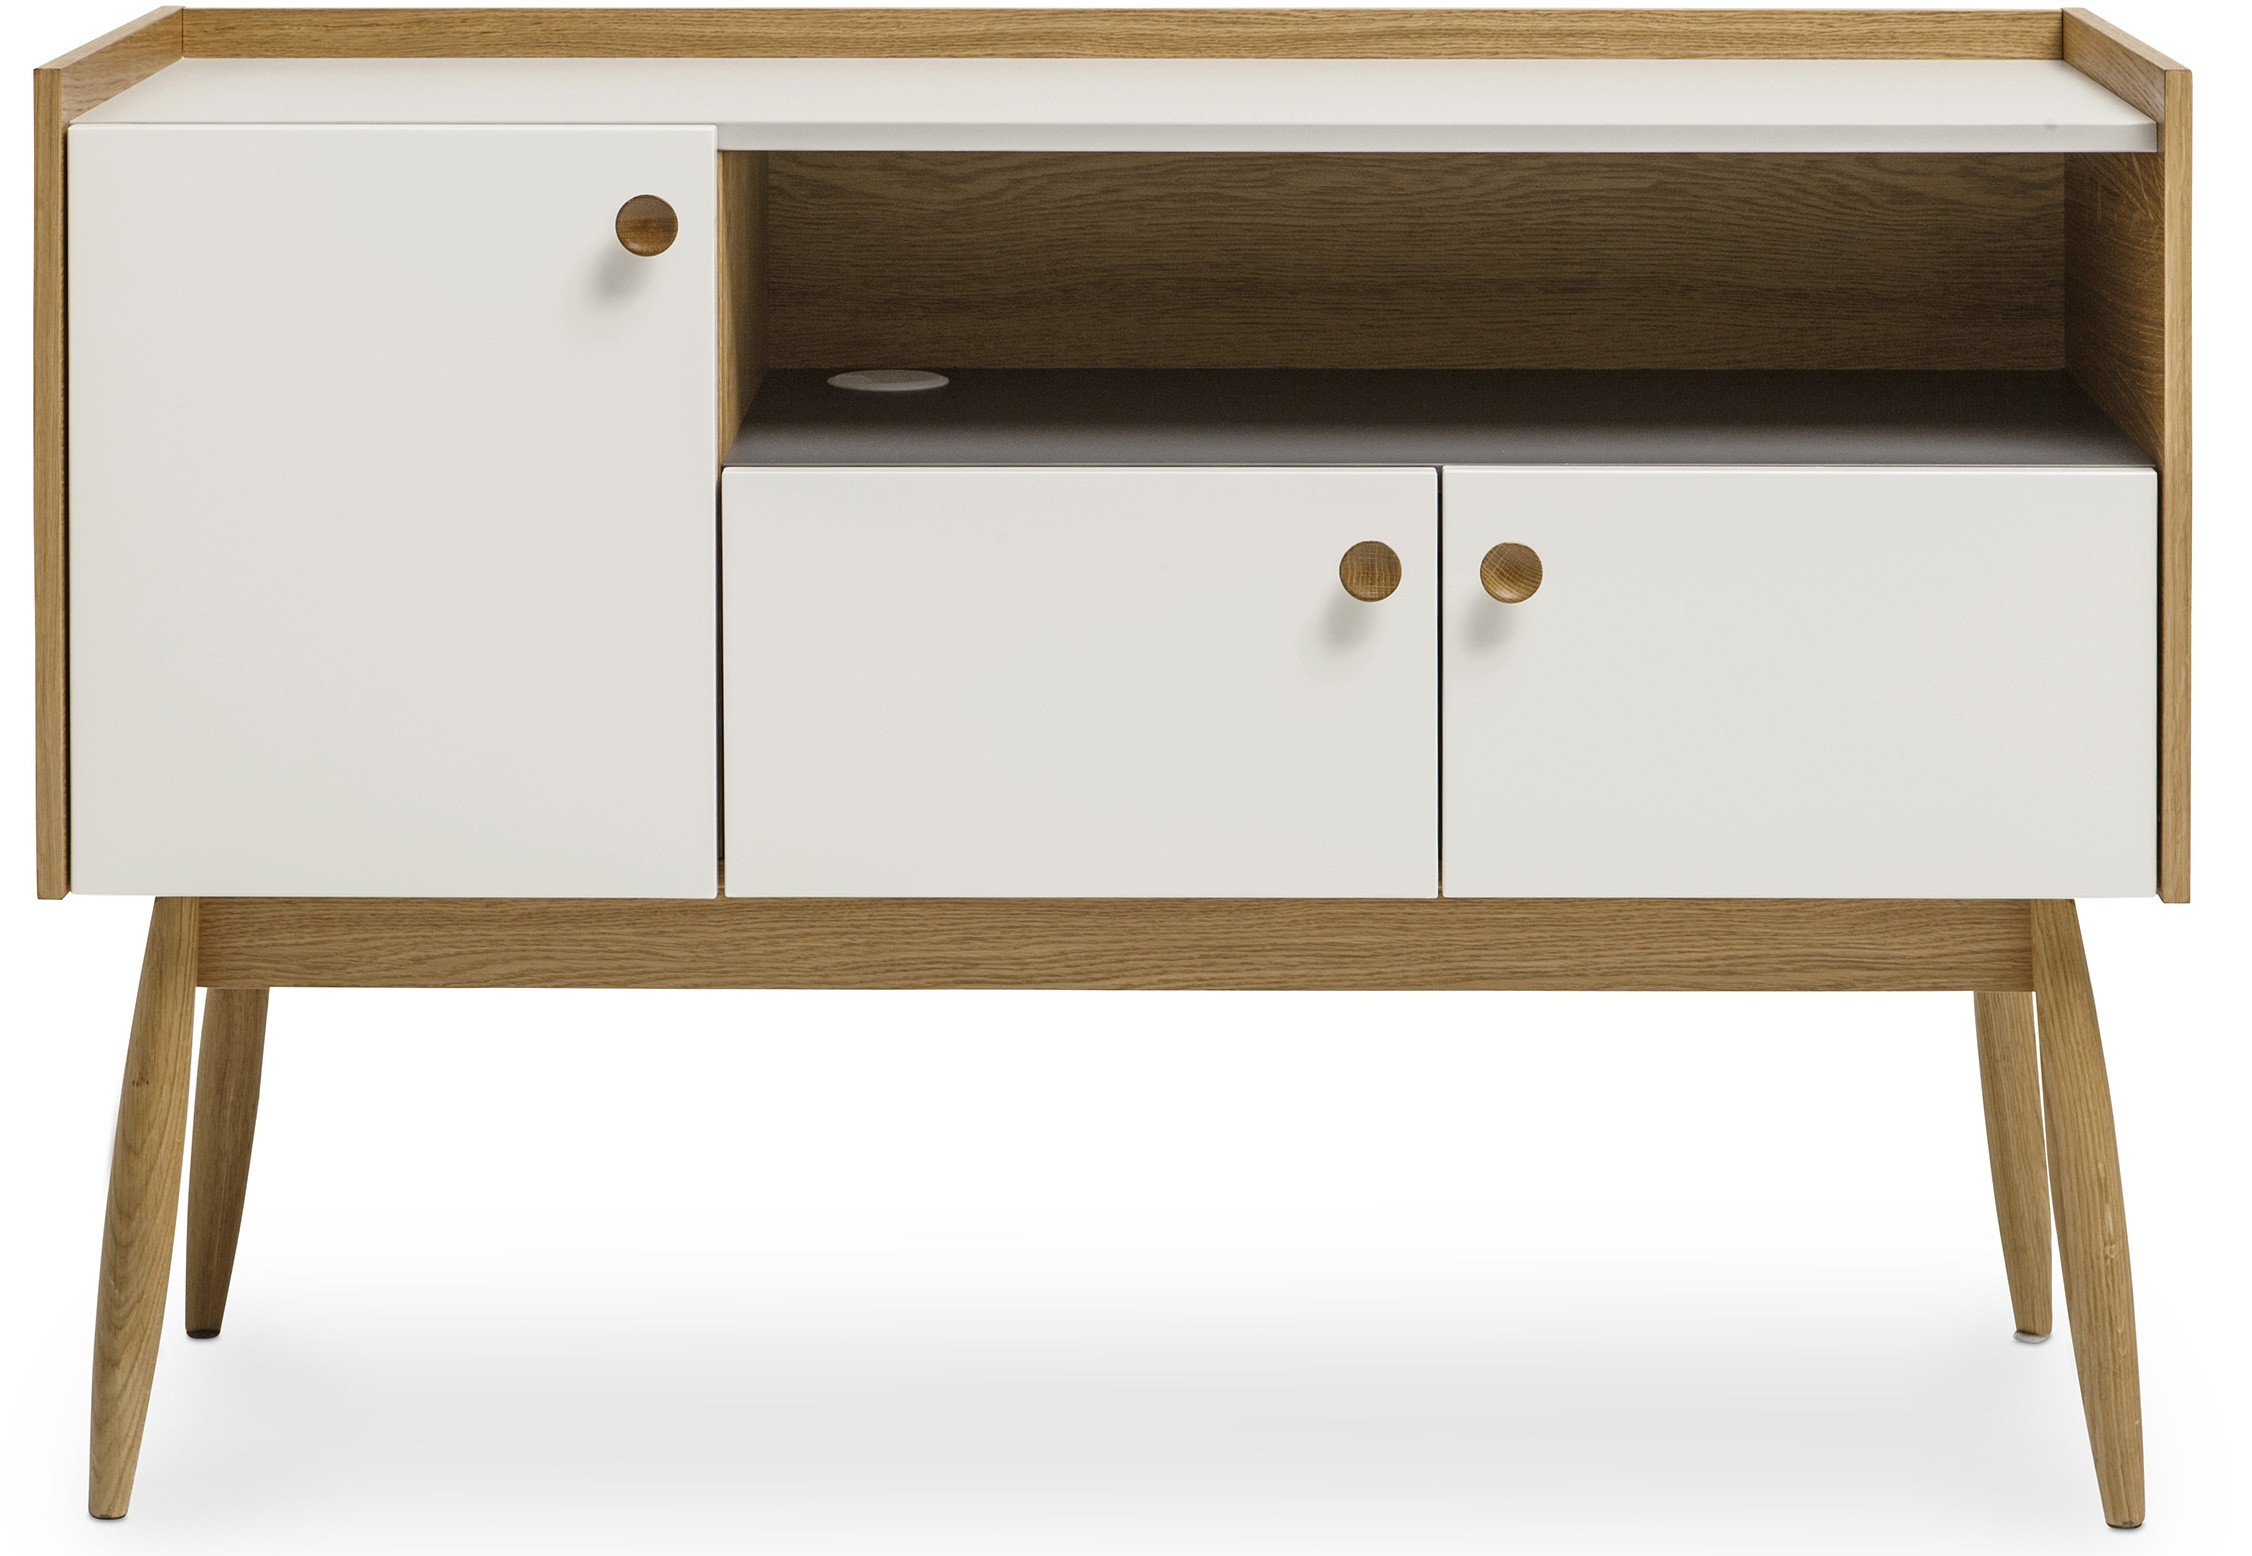 petit buffet 3 portes et 1 niche bois naturel et blanc martin. Black Bedroom Furniture Sets. Home Design Ideas